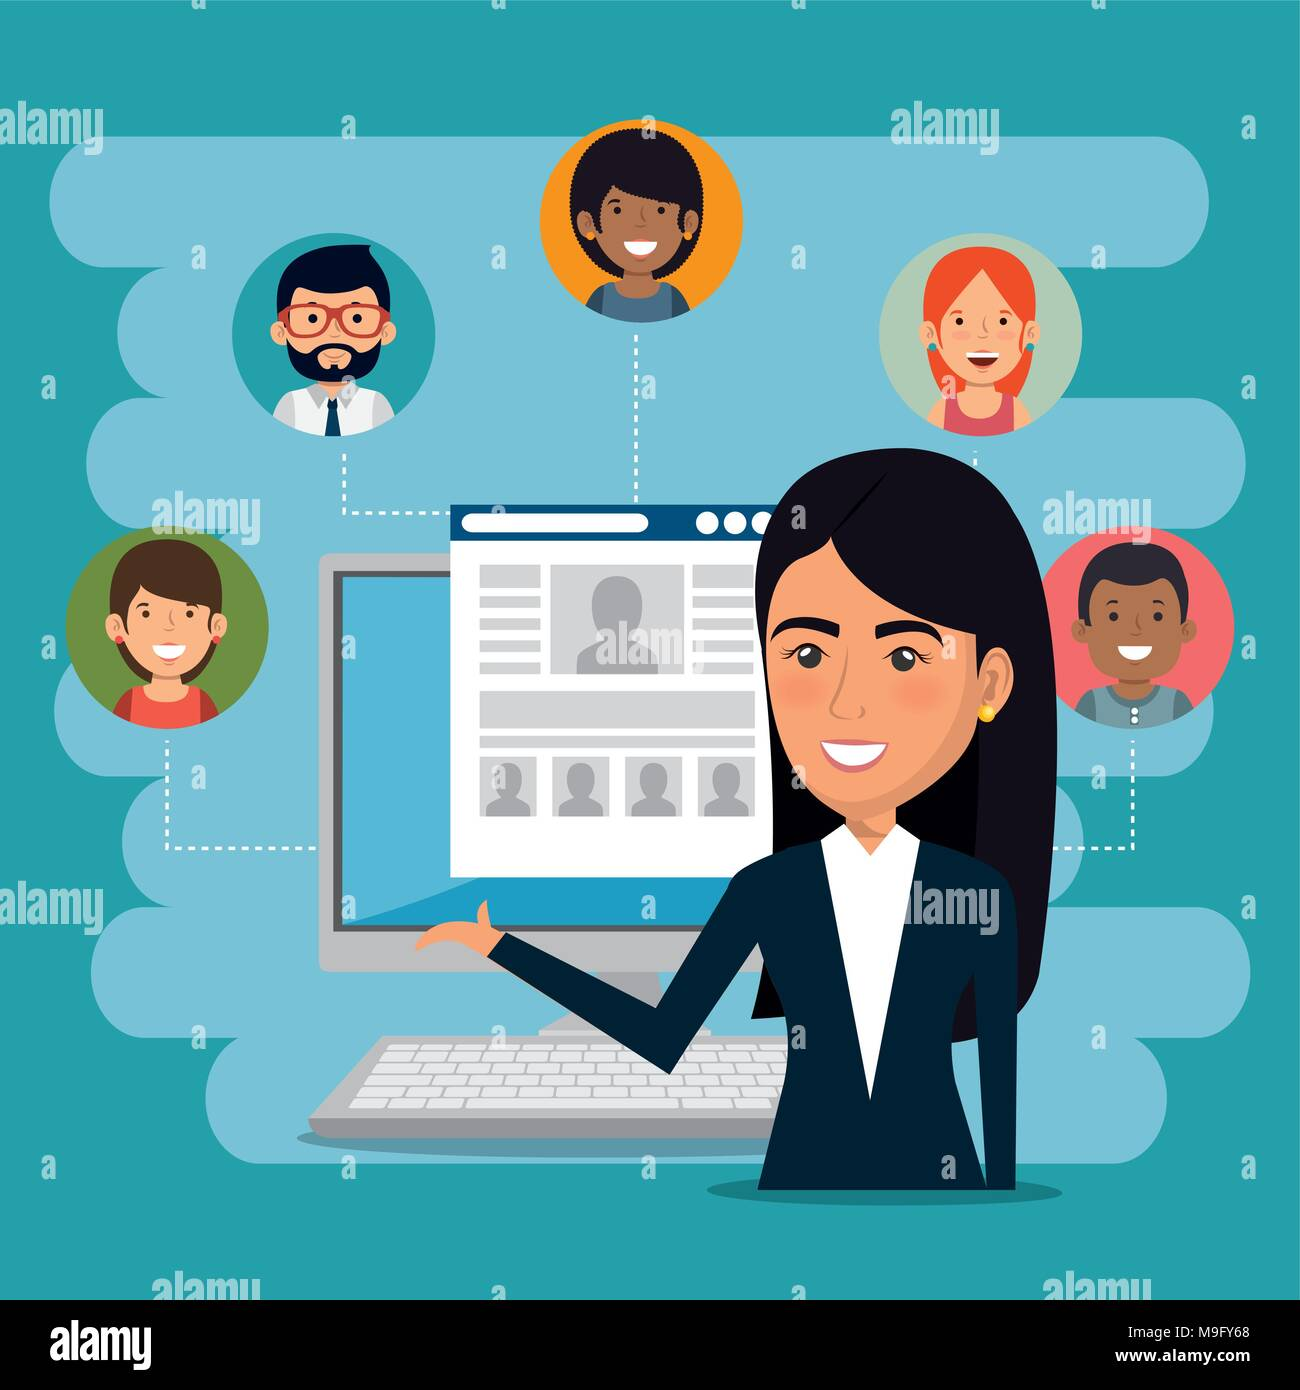 businesswoman with e-mail marketing icons - Stock Image